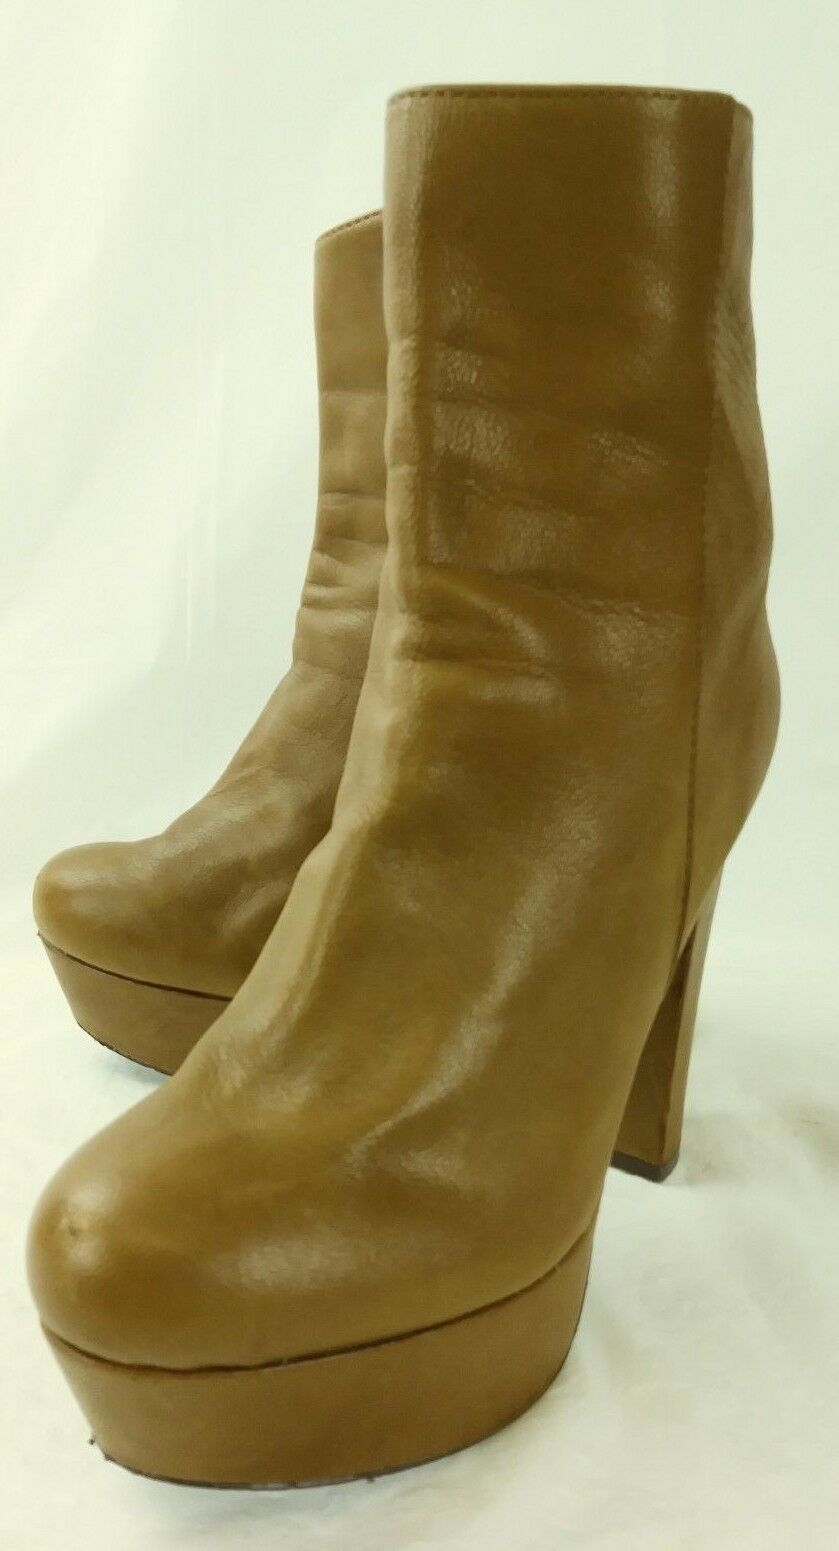 Steve Madden Wos Boots Ankle DESIRRED US 7.5 M Brown Leather Zip Platforms 2821